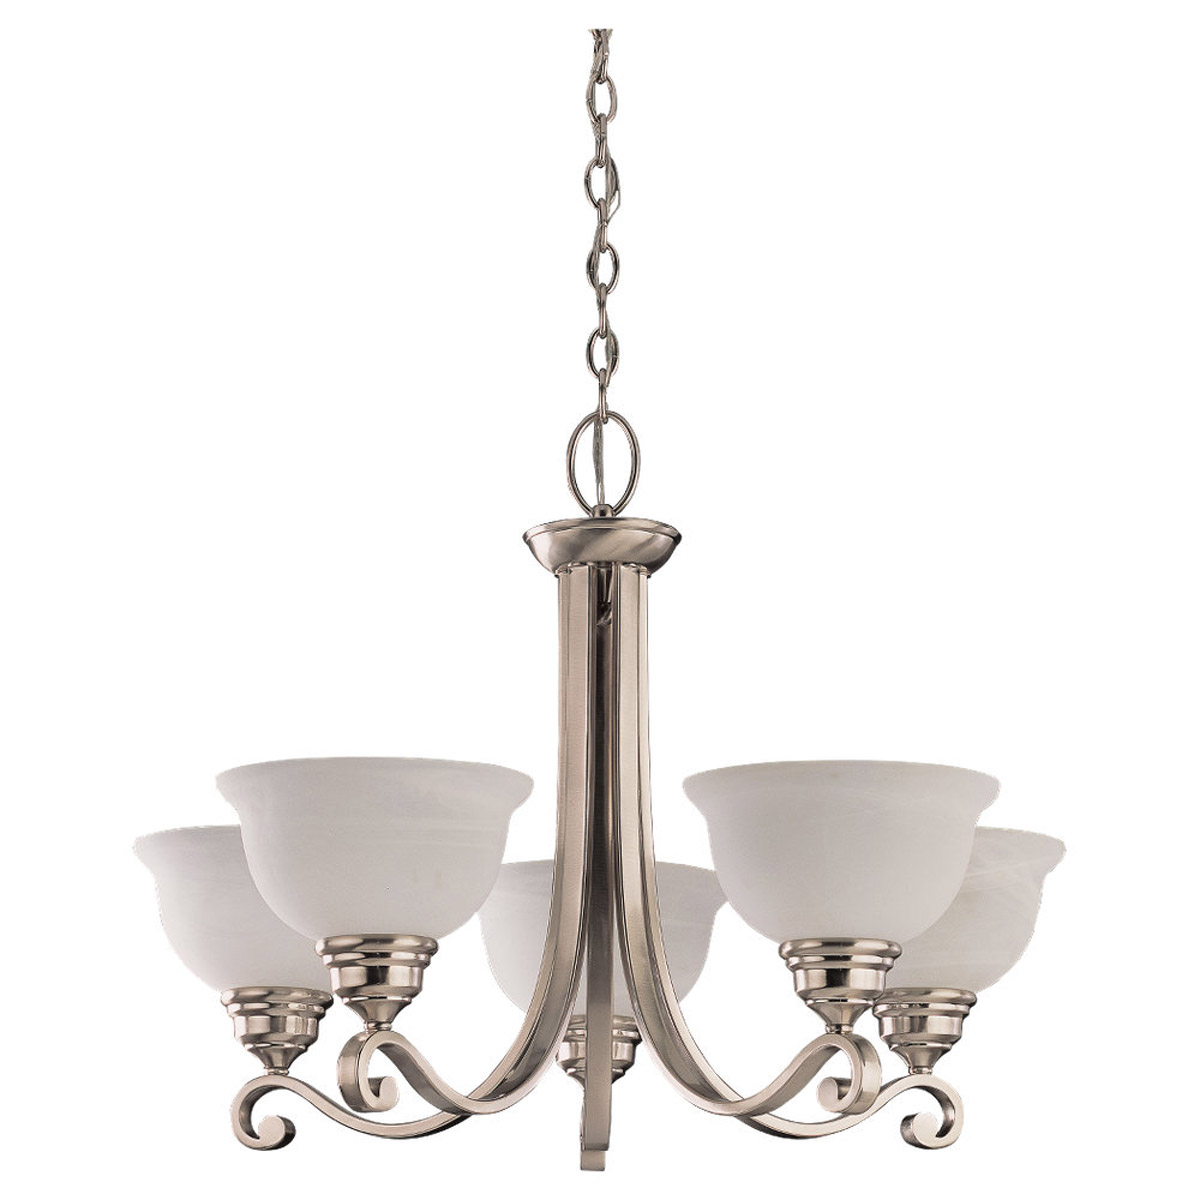 Sea Gull Lighting Serenity 5 Light Chandelier in Brushed Nickel 31191-962